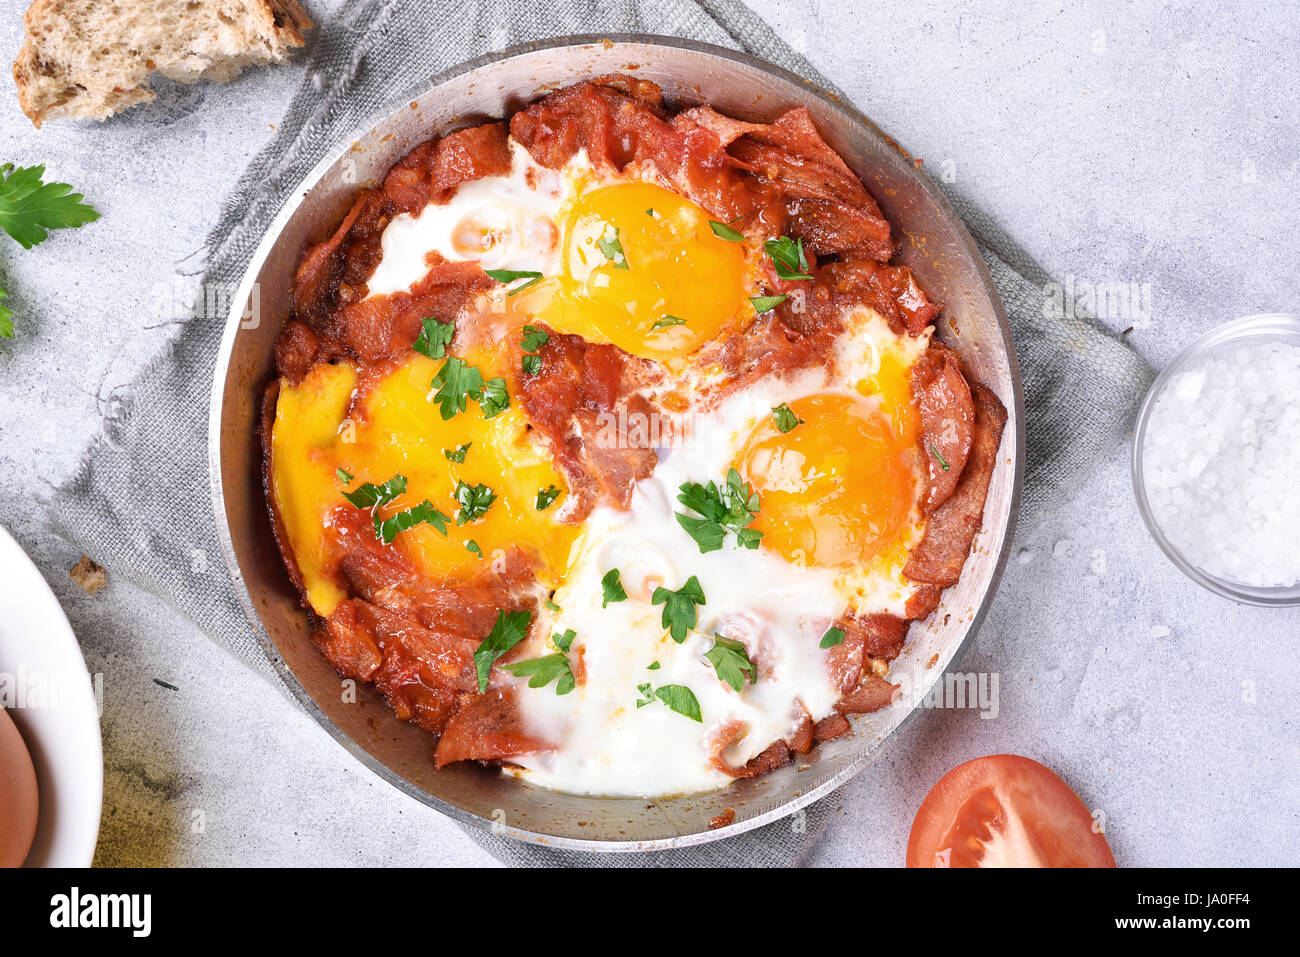 Fried eggs with tomato sauce and bacon in frying pan, top view, close up - Stock Image